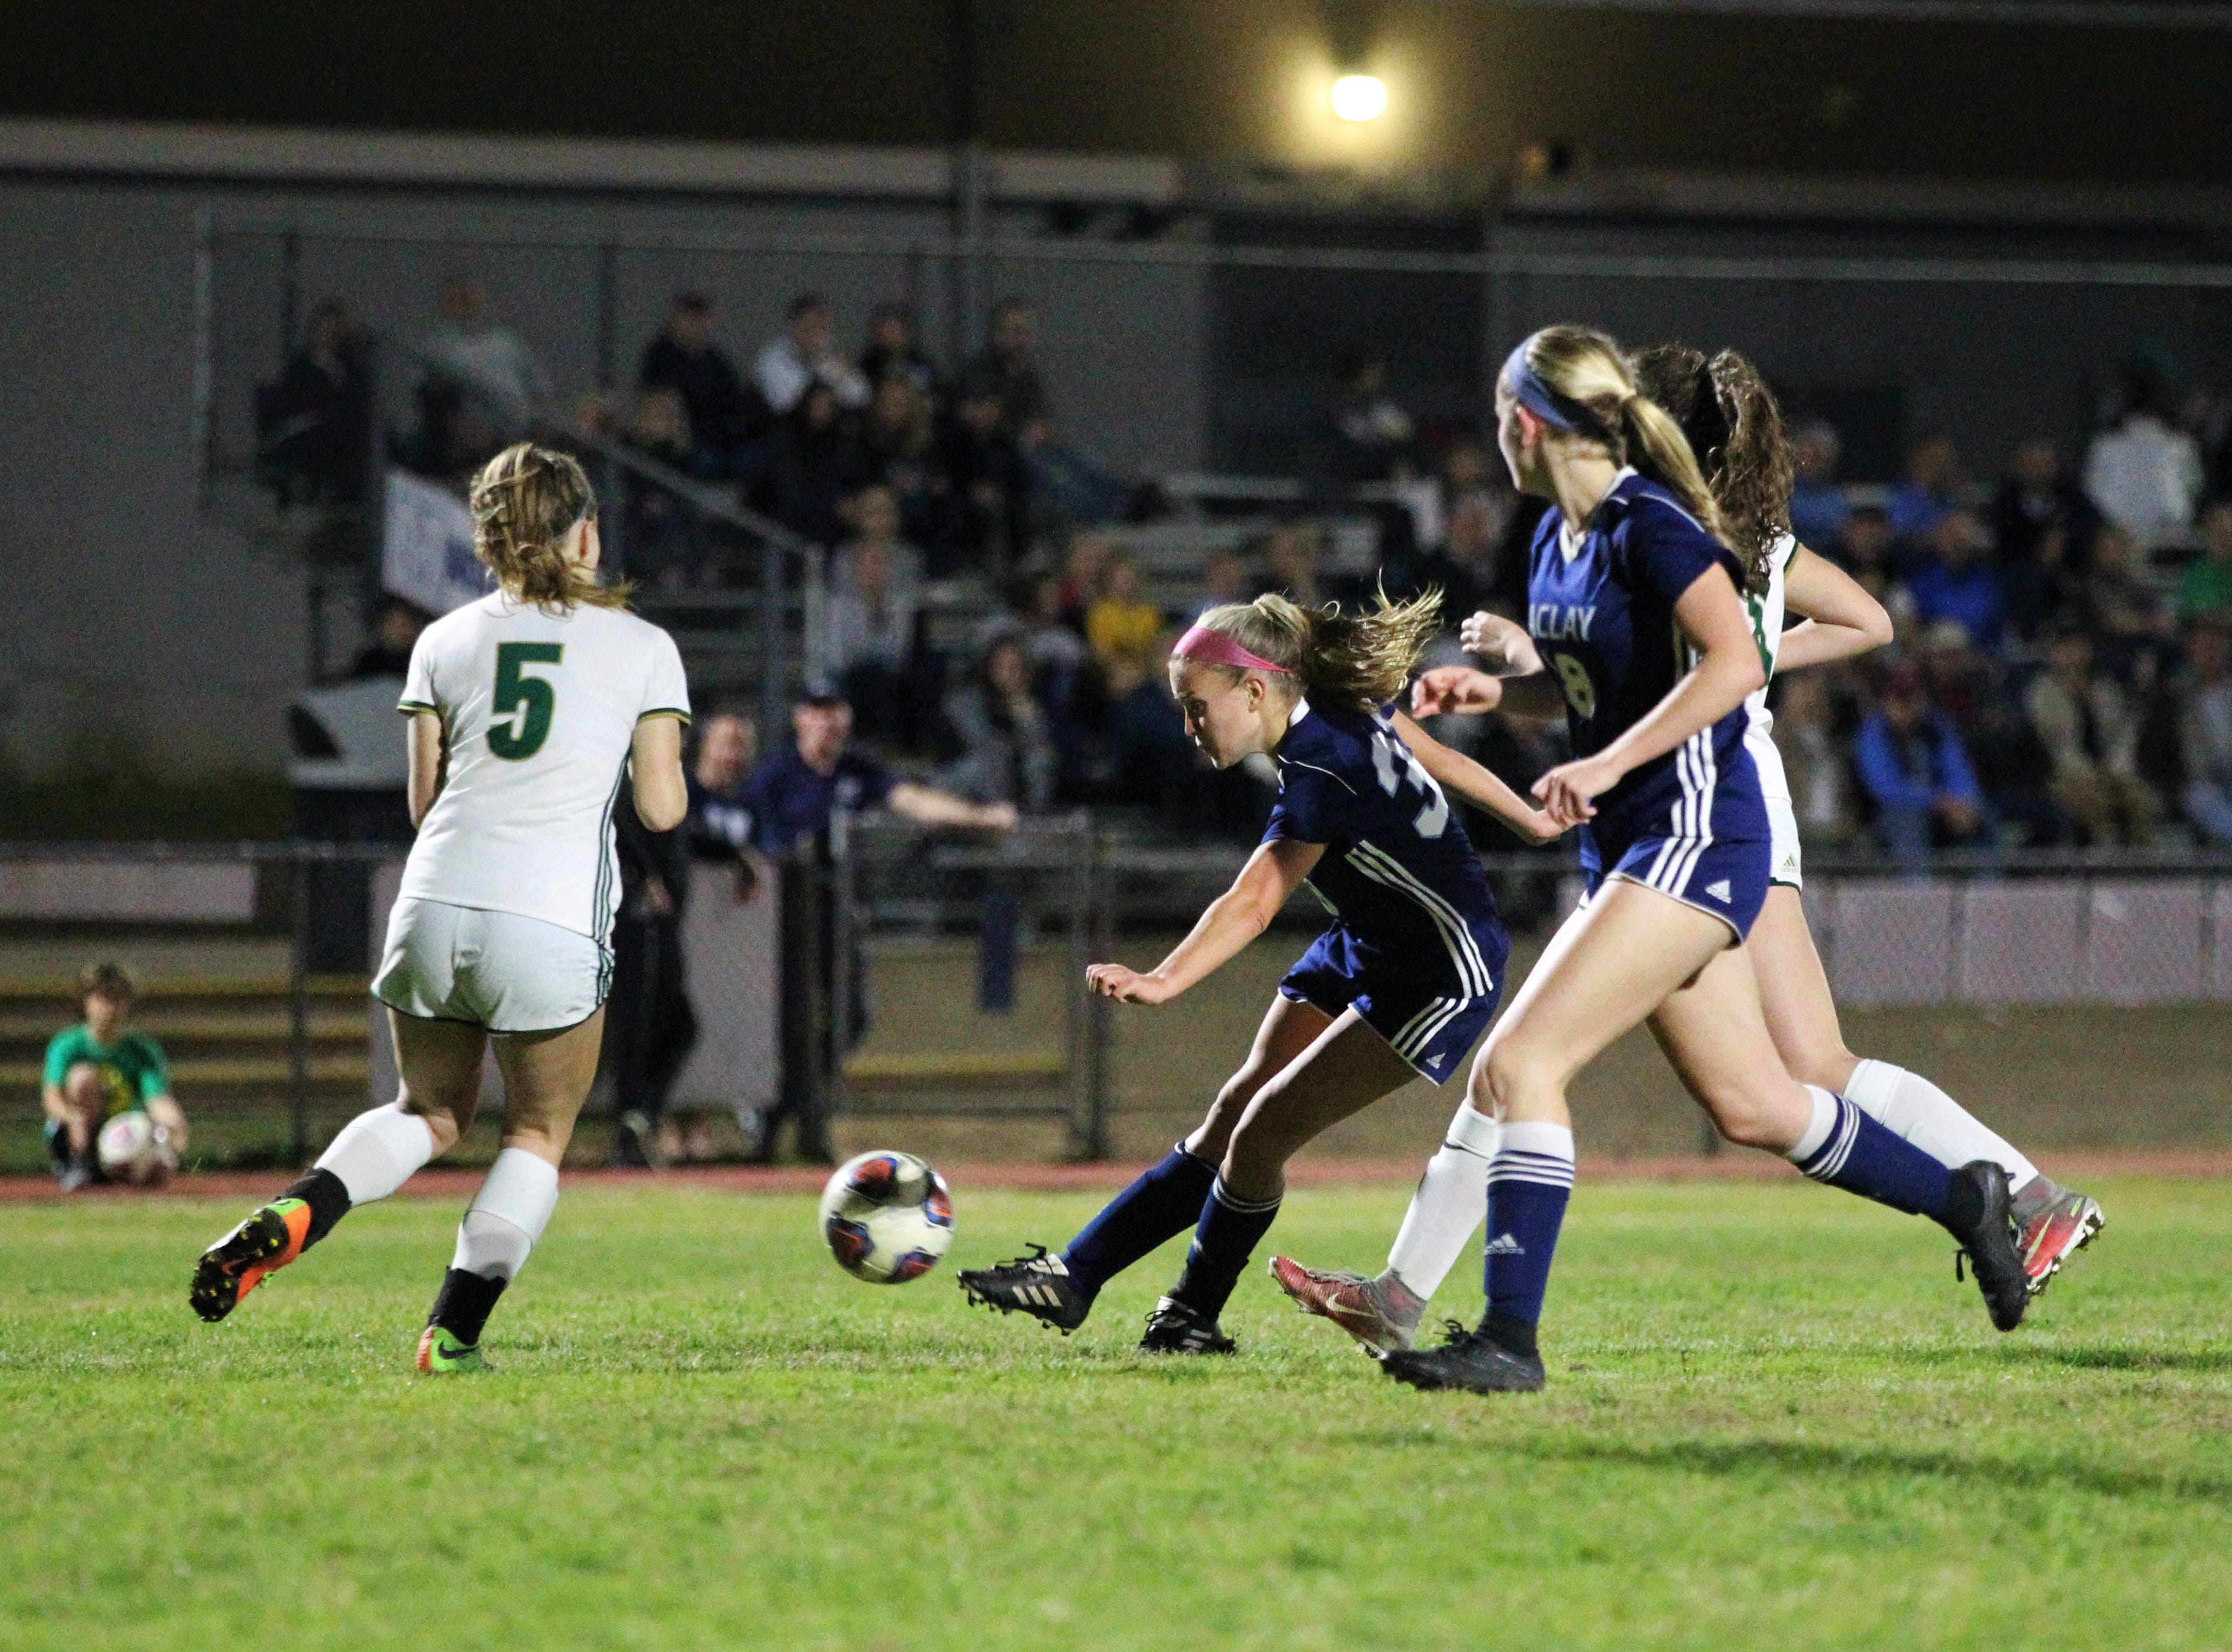 Maclay's Colleen Donahue takes a shot on goal as Maclay's girls soccer team beat St. Joseph Academy 4-0 in a Region 1-1A quarterfinal on Jan. 5, 2019.